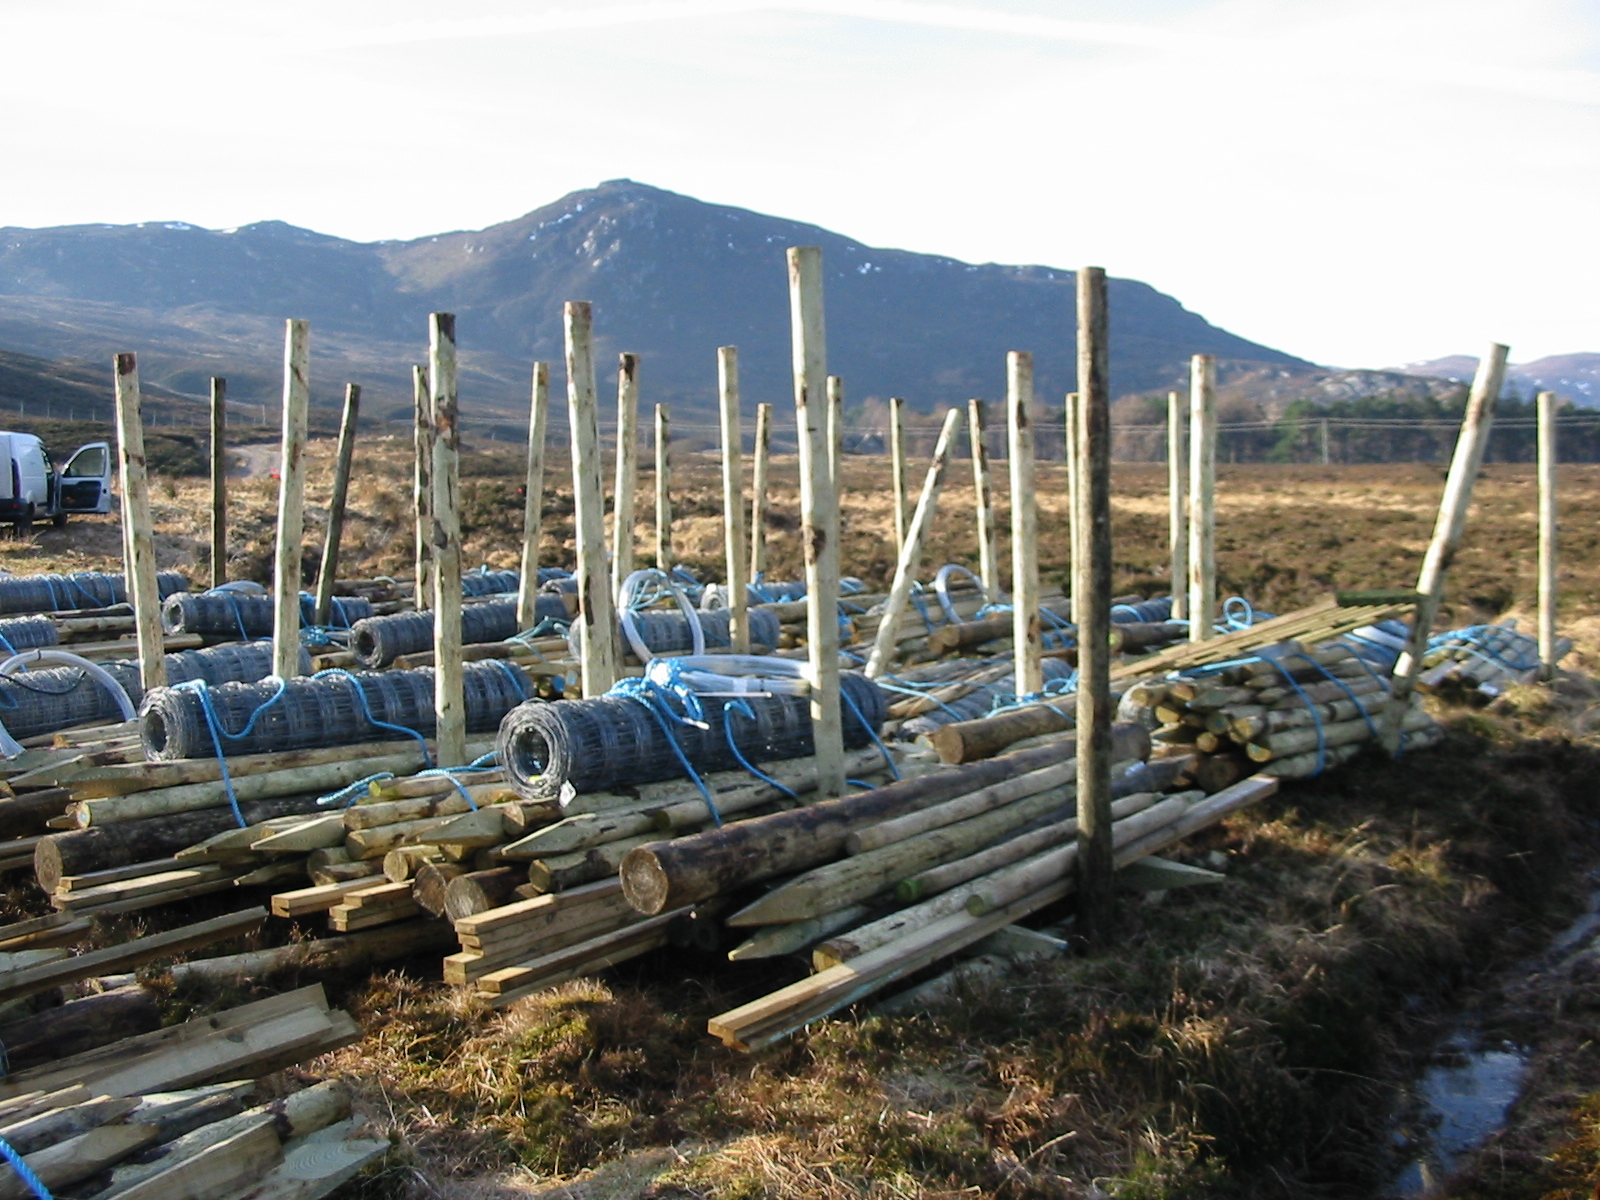 Bundles of deer fence materials waiting for helicopter uplift